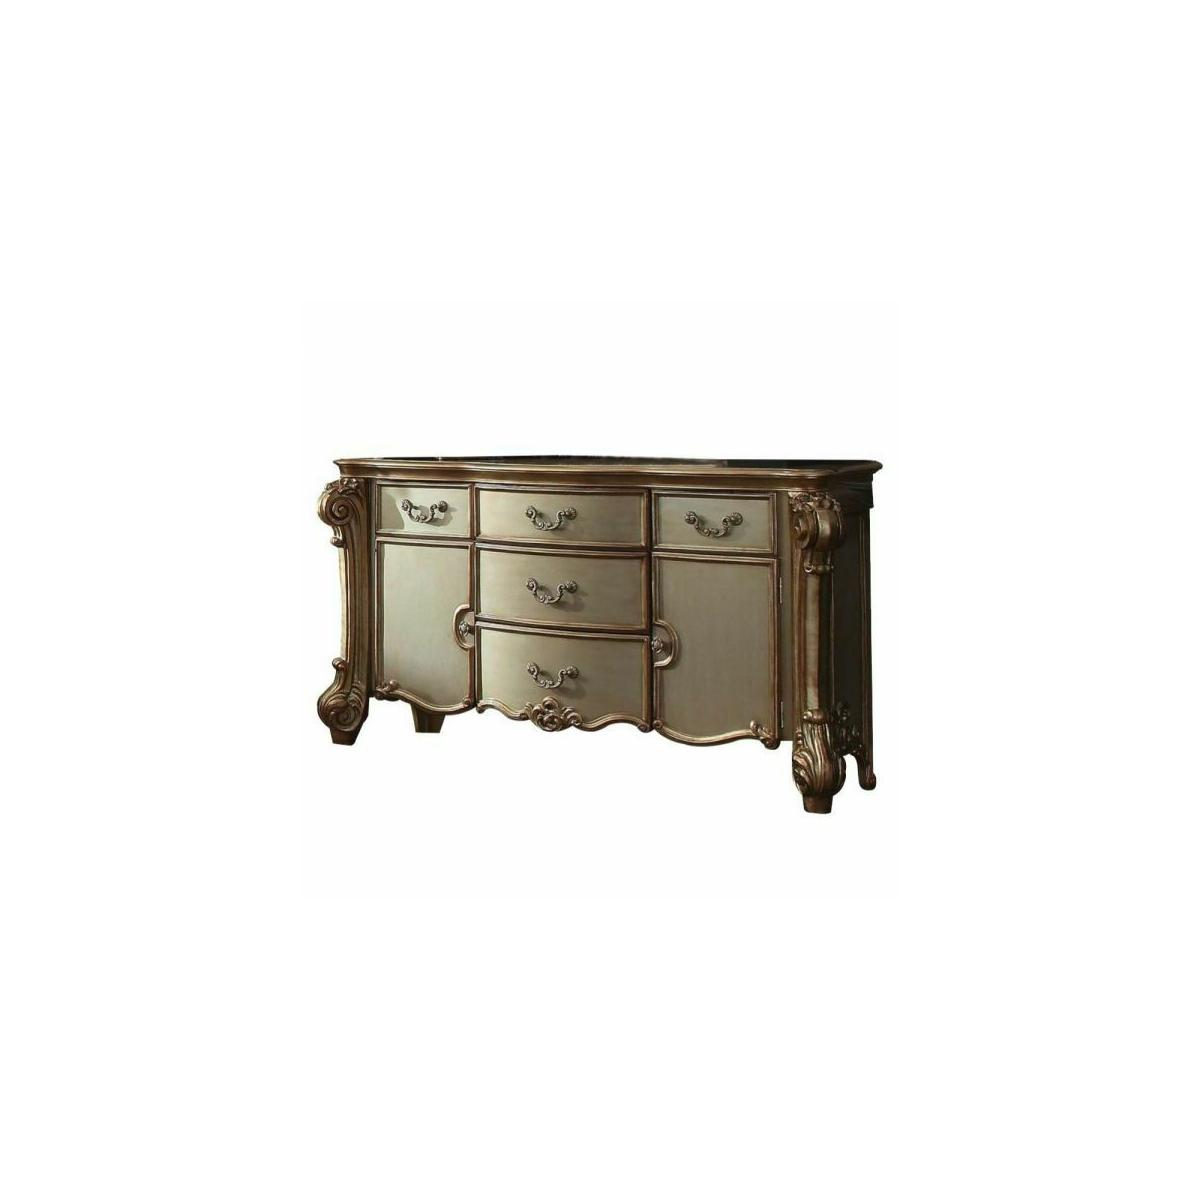 ACME Vendome Dresser - 23005 - Gold Patina & Bone